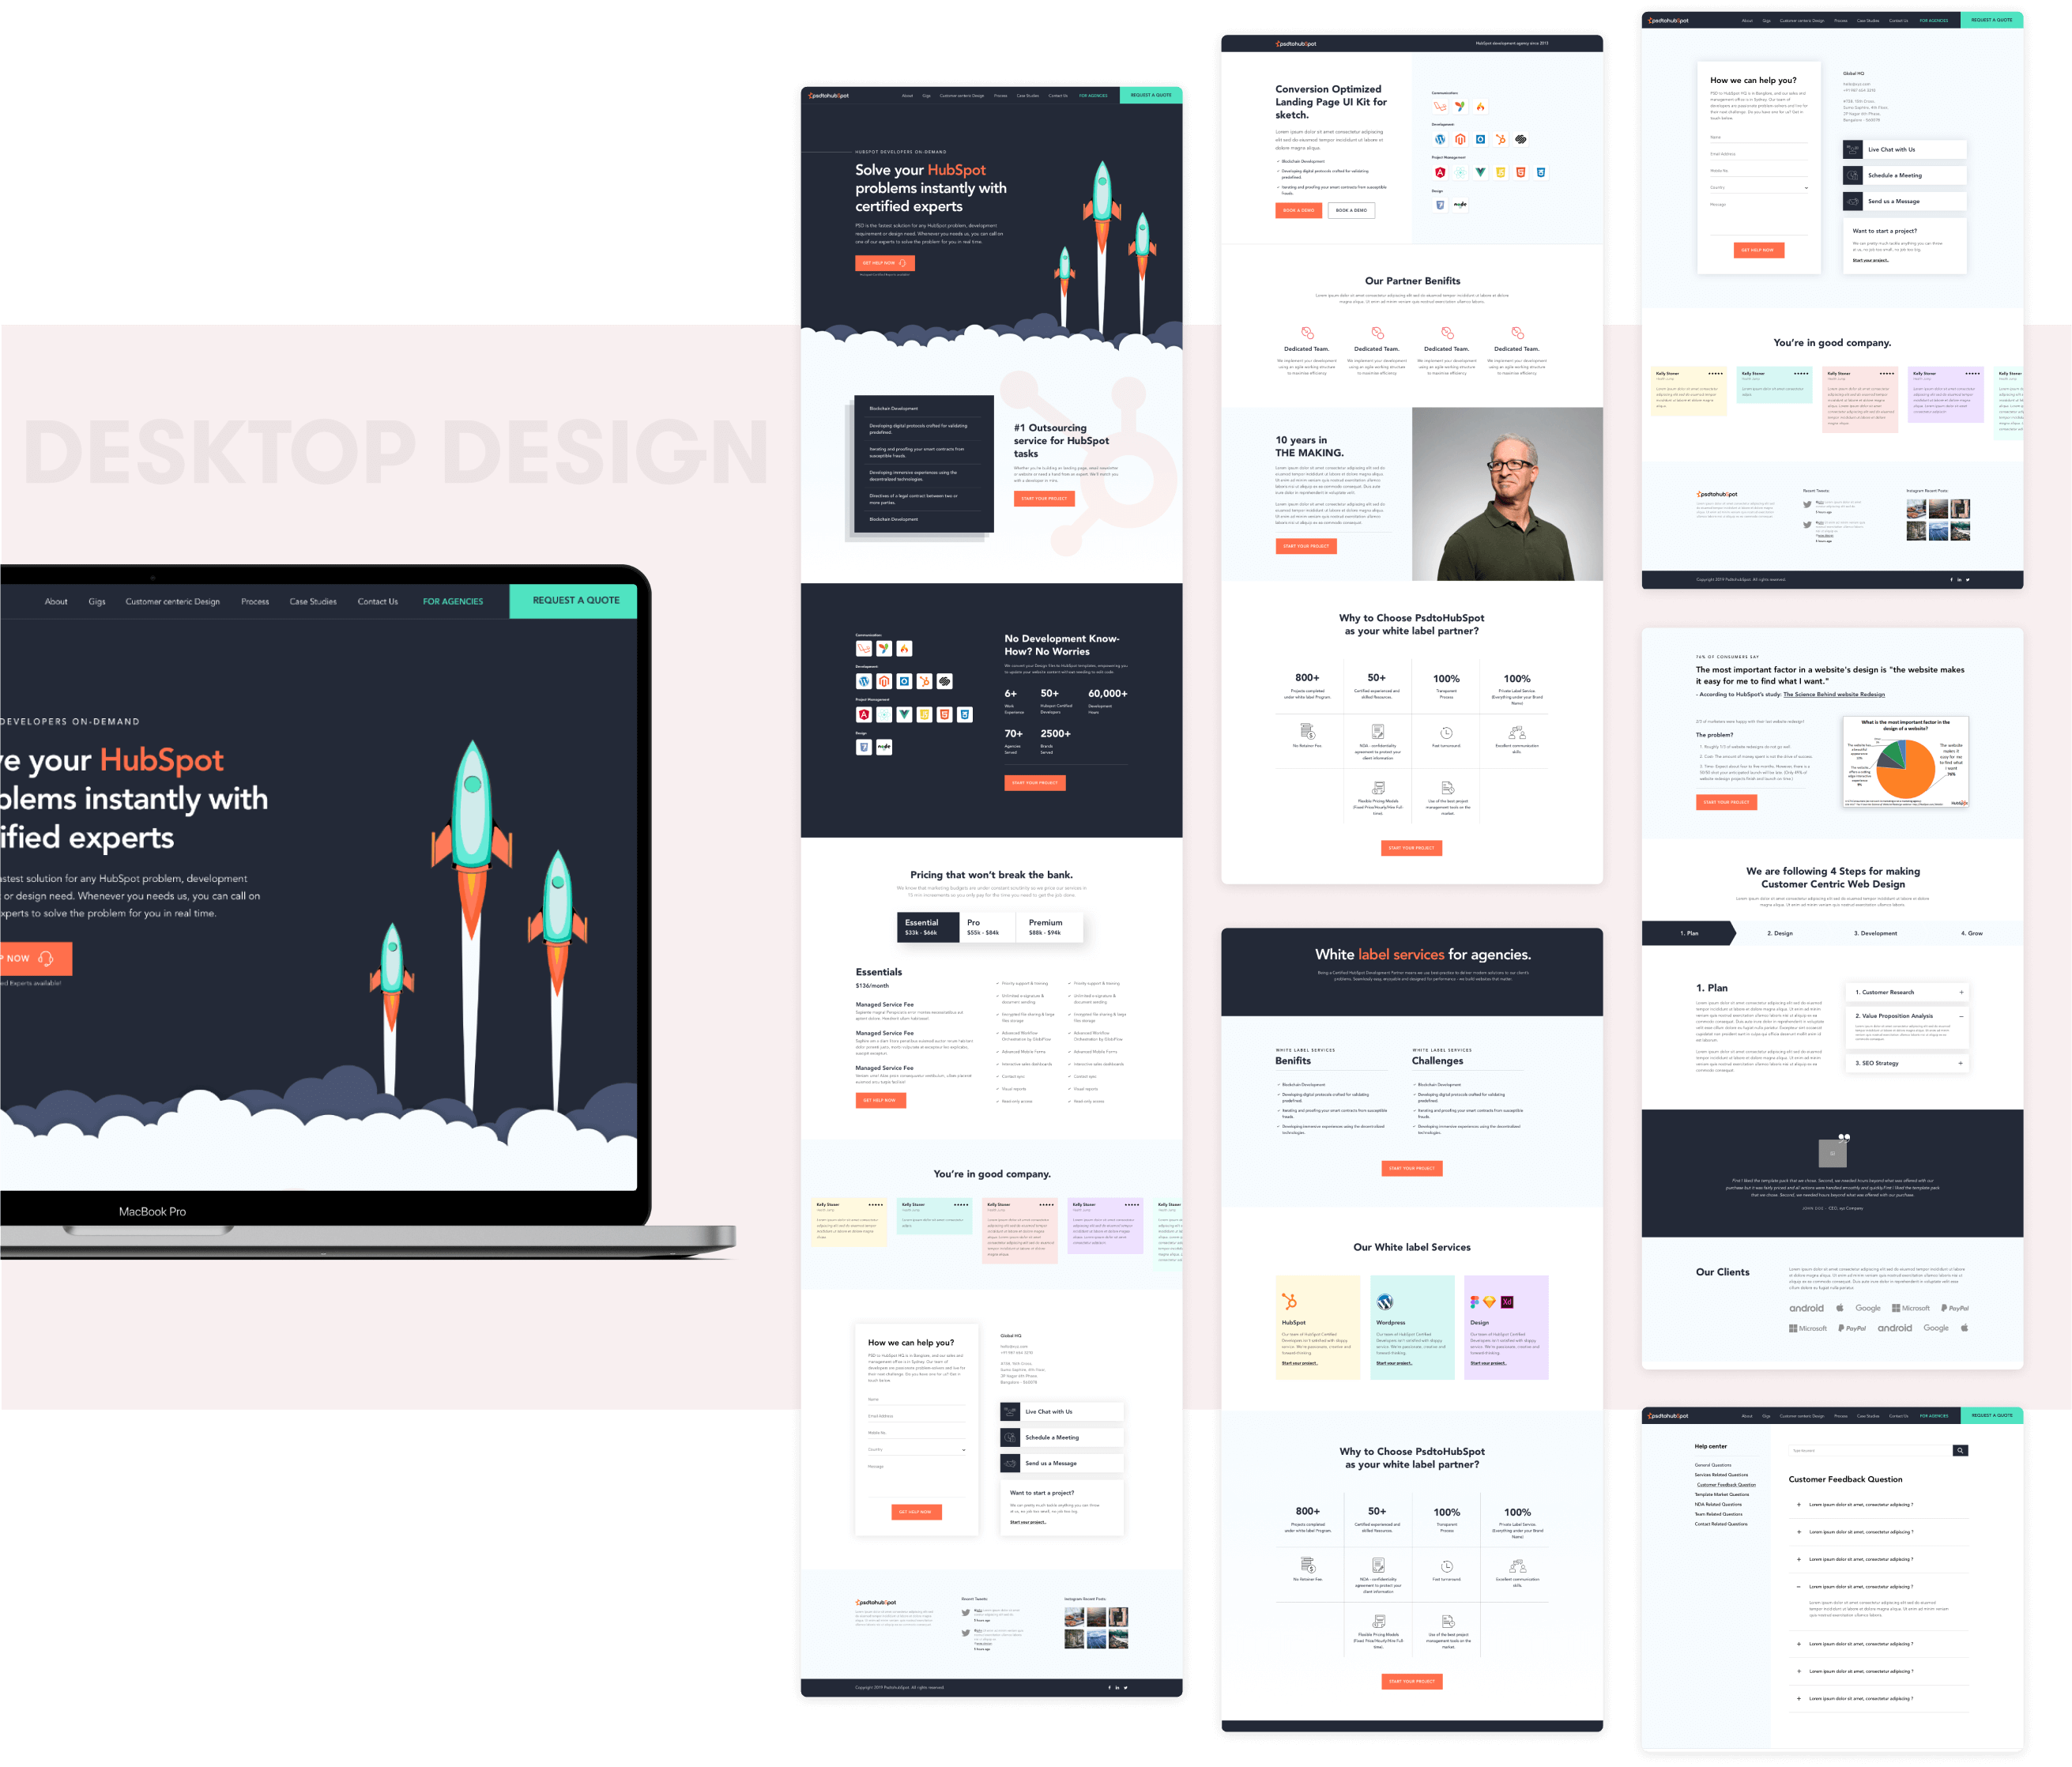 Psdtohubspot Design and development by wowdesign